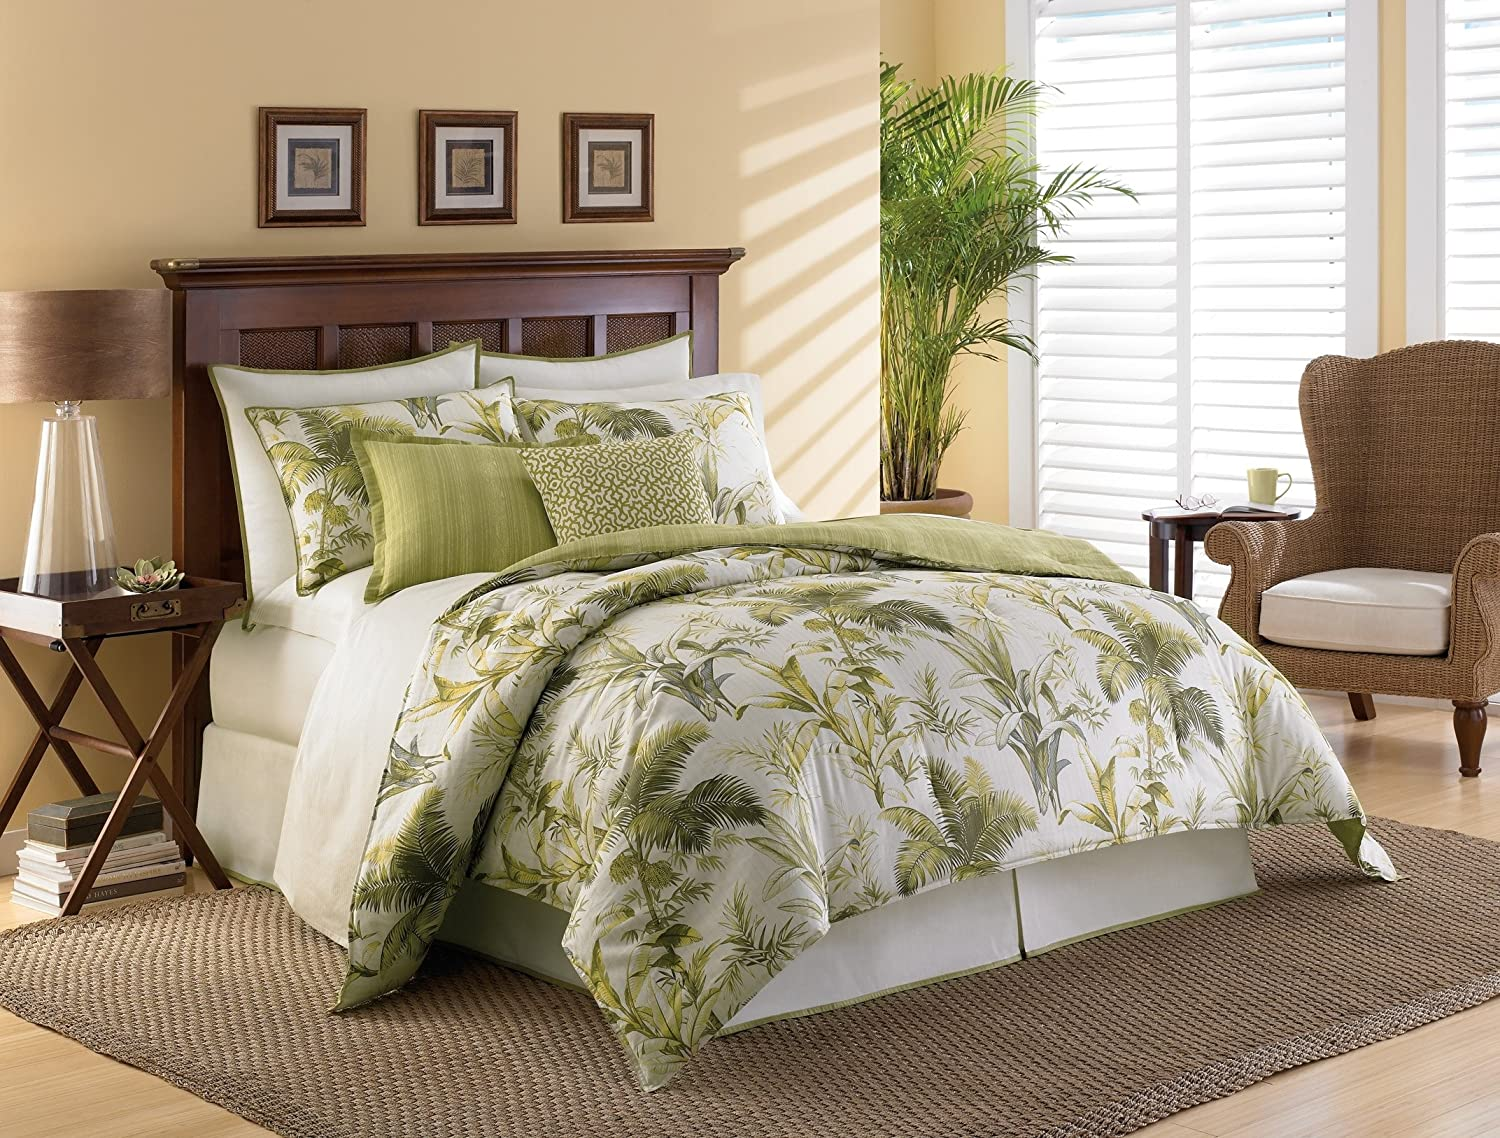 Green Bedding And Bedroom Decor Ideas. Tommy Bahama Bedding Songbird  Reversible Quilt Set Reviews Wayfair